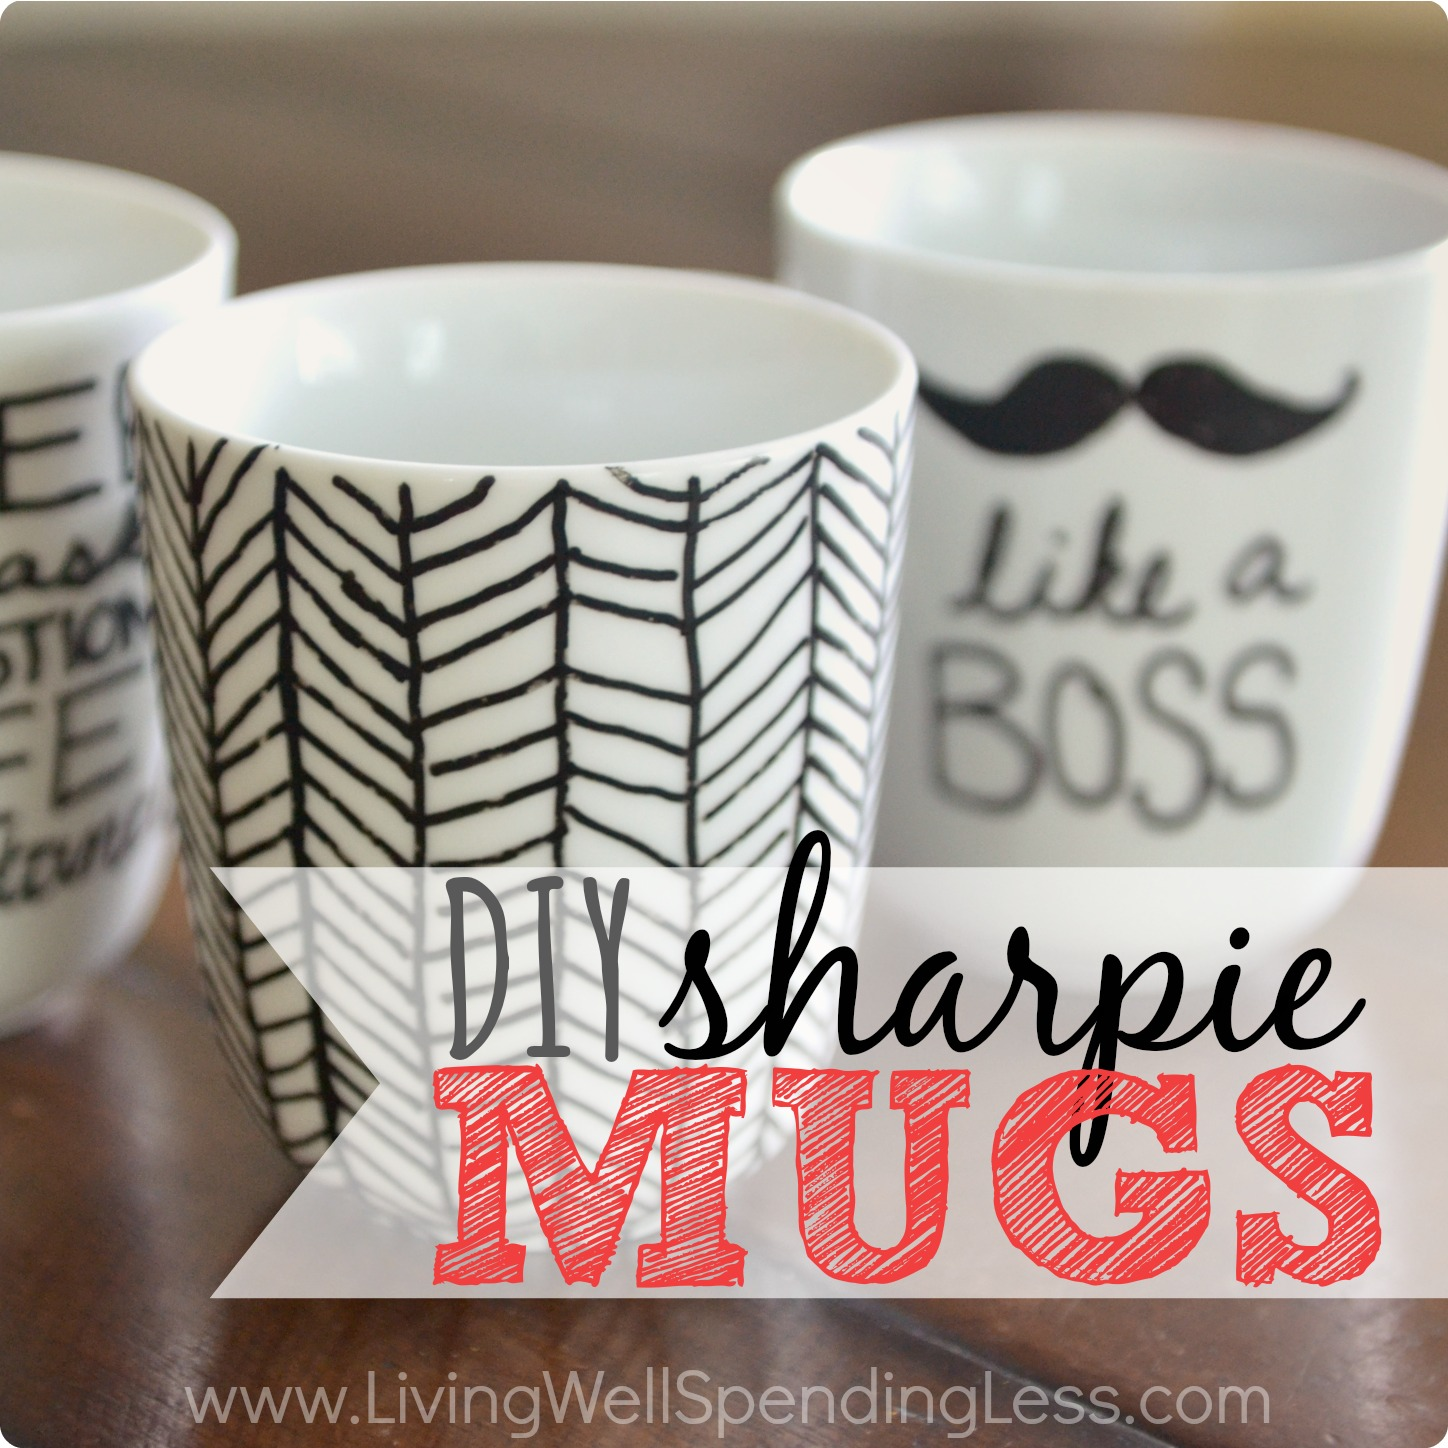 Cute Mugs Sharpie interesting cute mugs sharpie course intended inspiration decorating